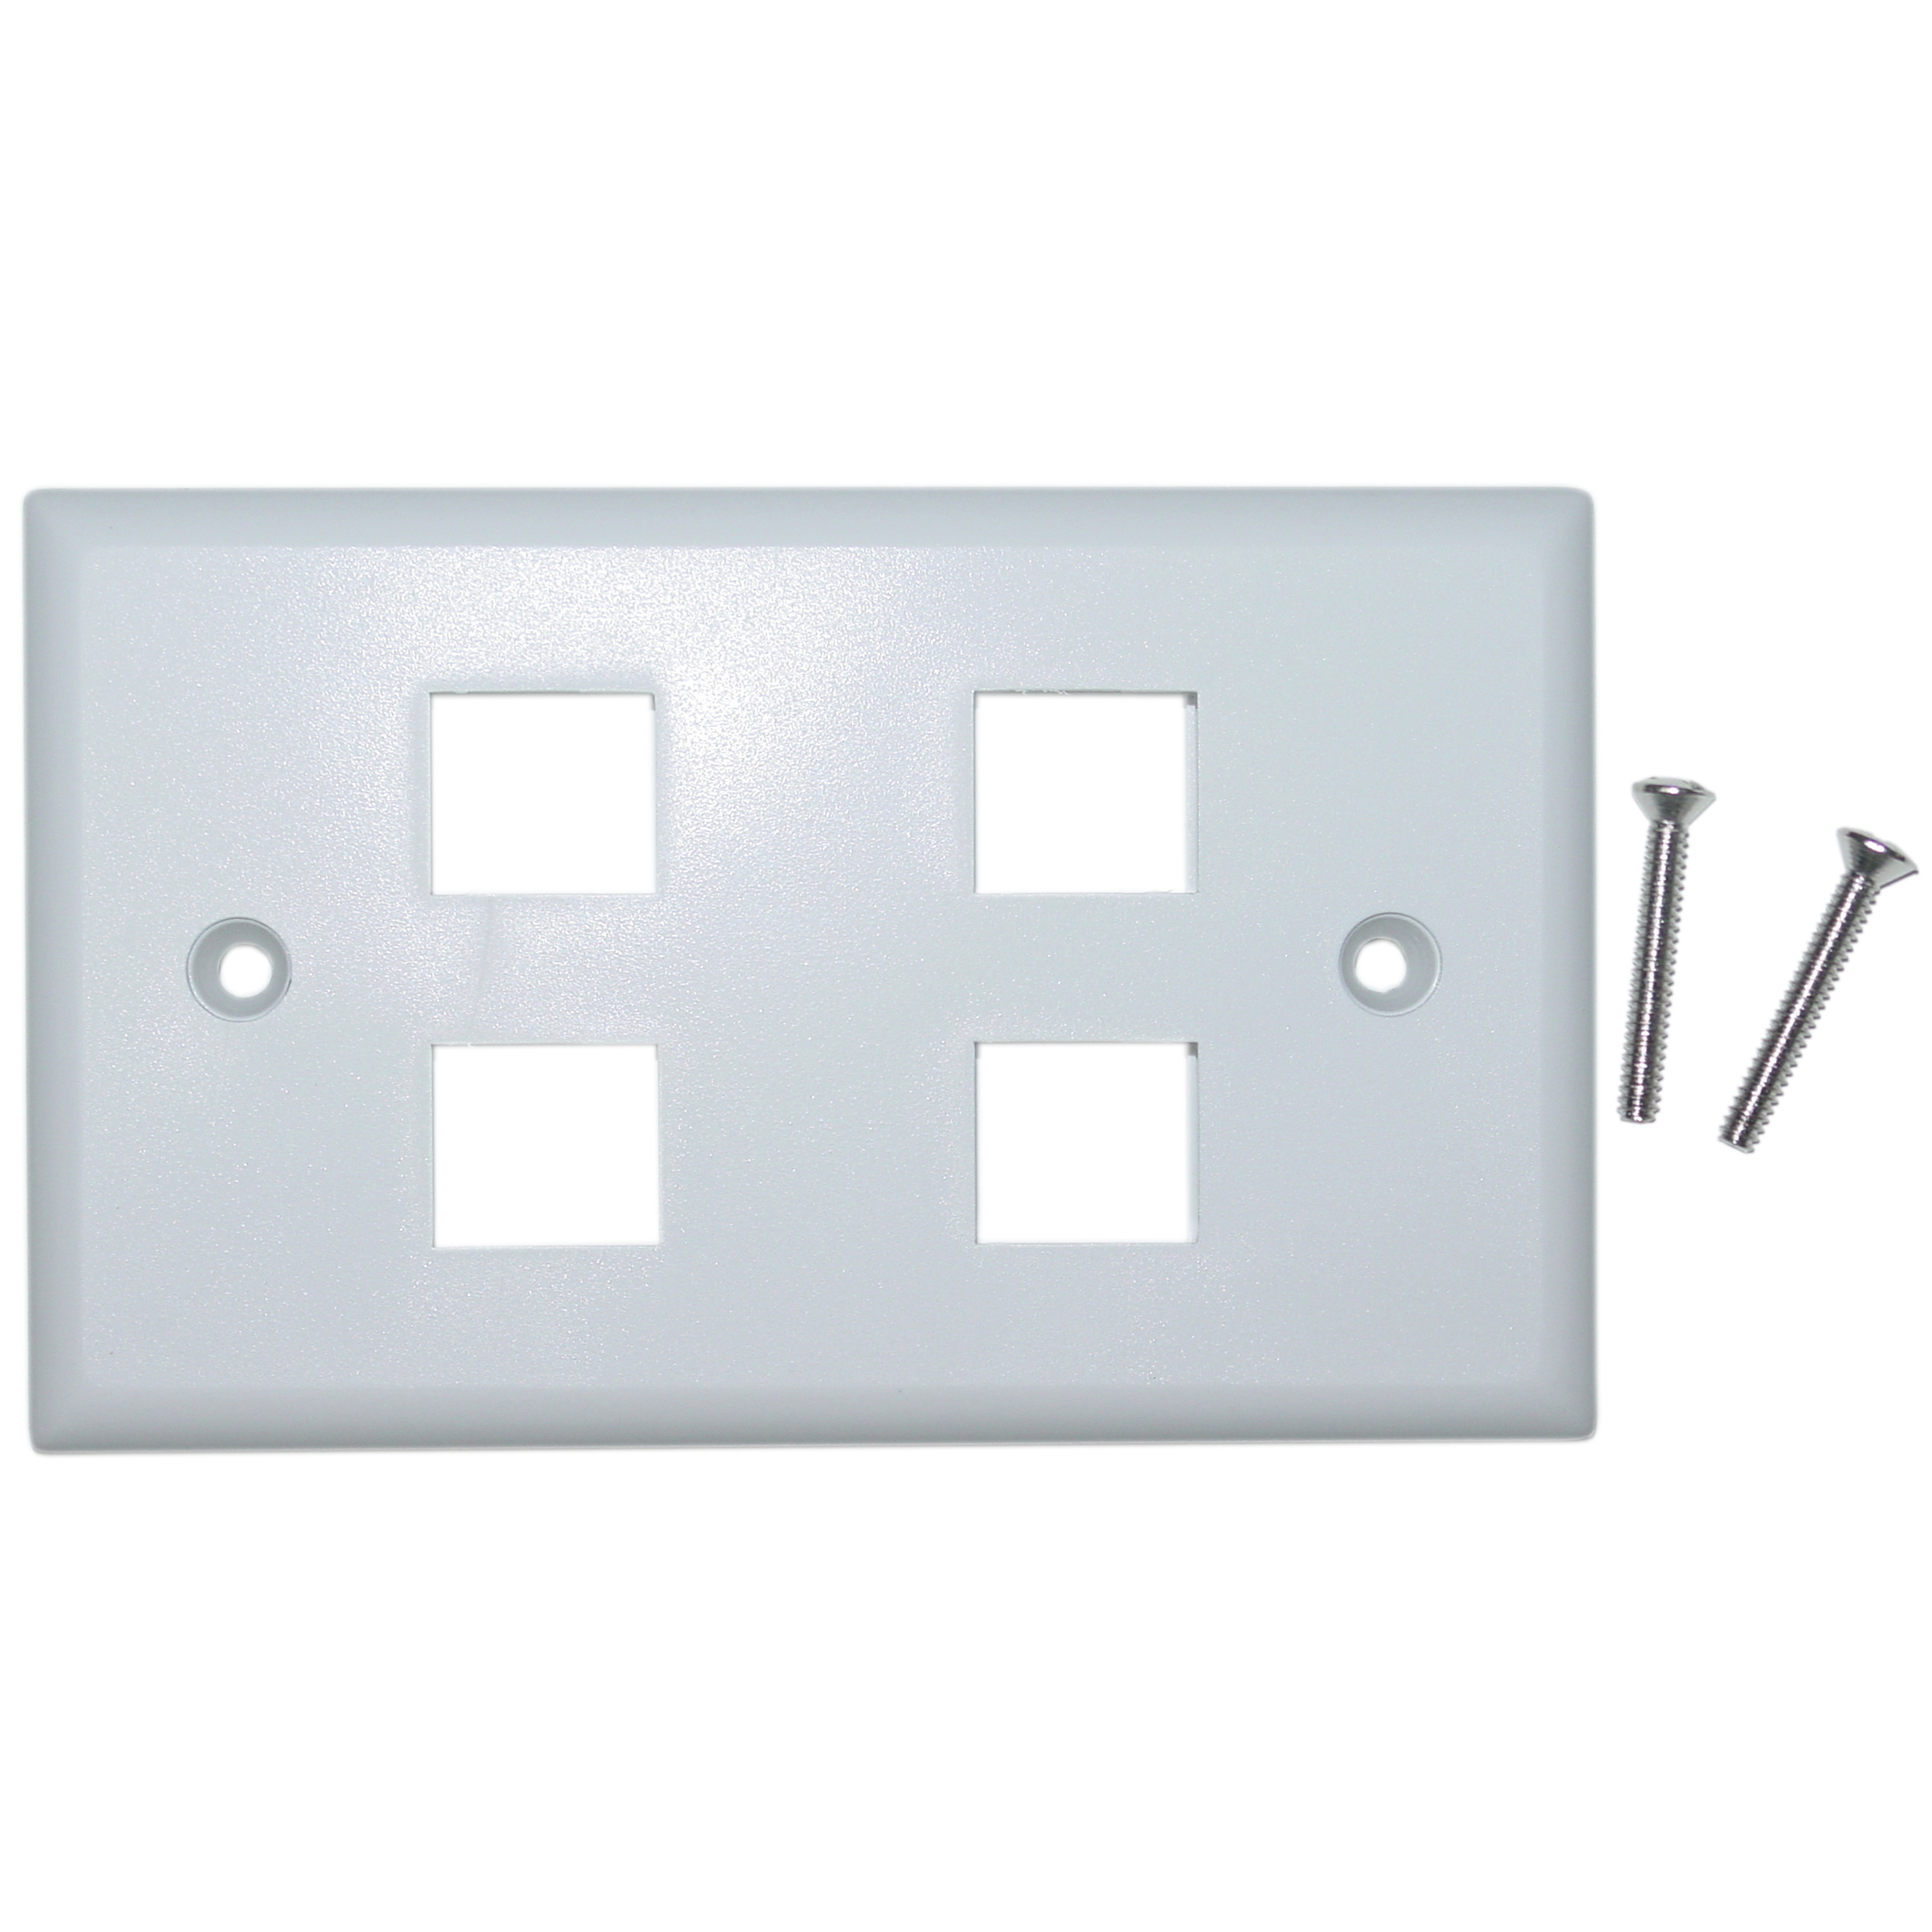 photo of Solid Wall Plate 4 Port